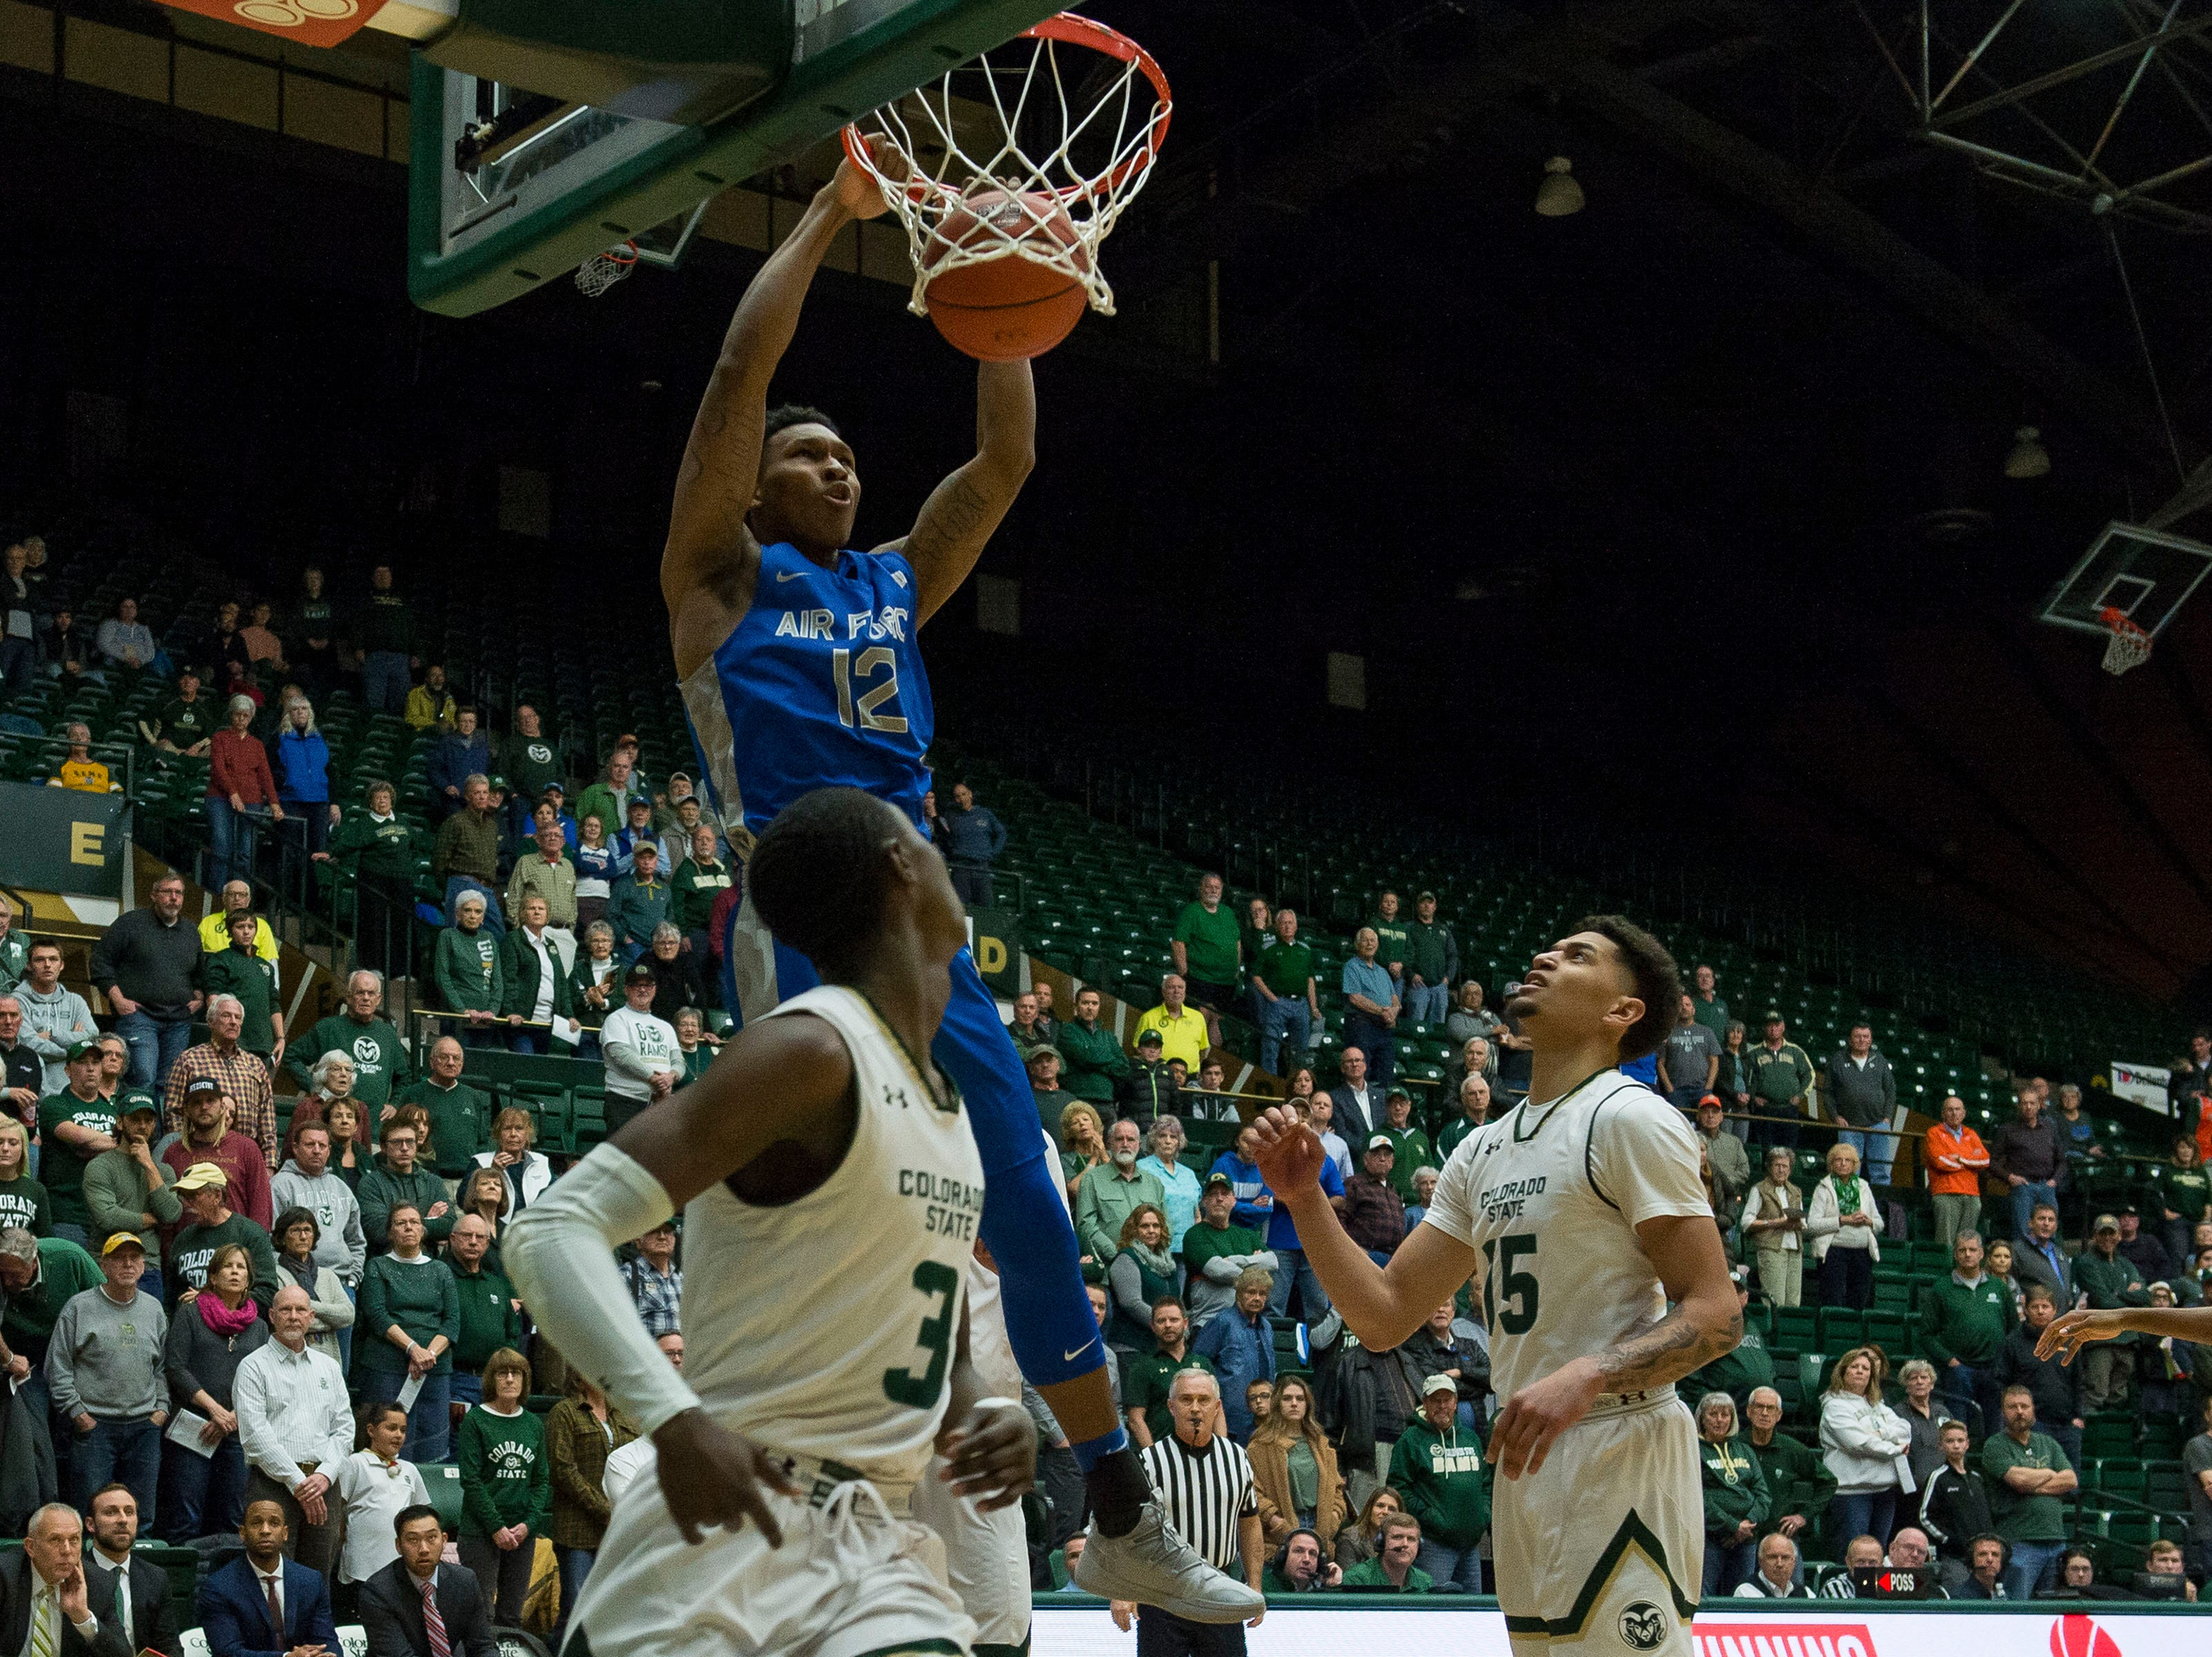 Air Force Academy junior forward Lavelle Scottie (12) dunk during a game against Colorado State University on Tuesday, Jan. 8, 2019, at Moby Arena in Fort Collins, Colo.